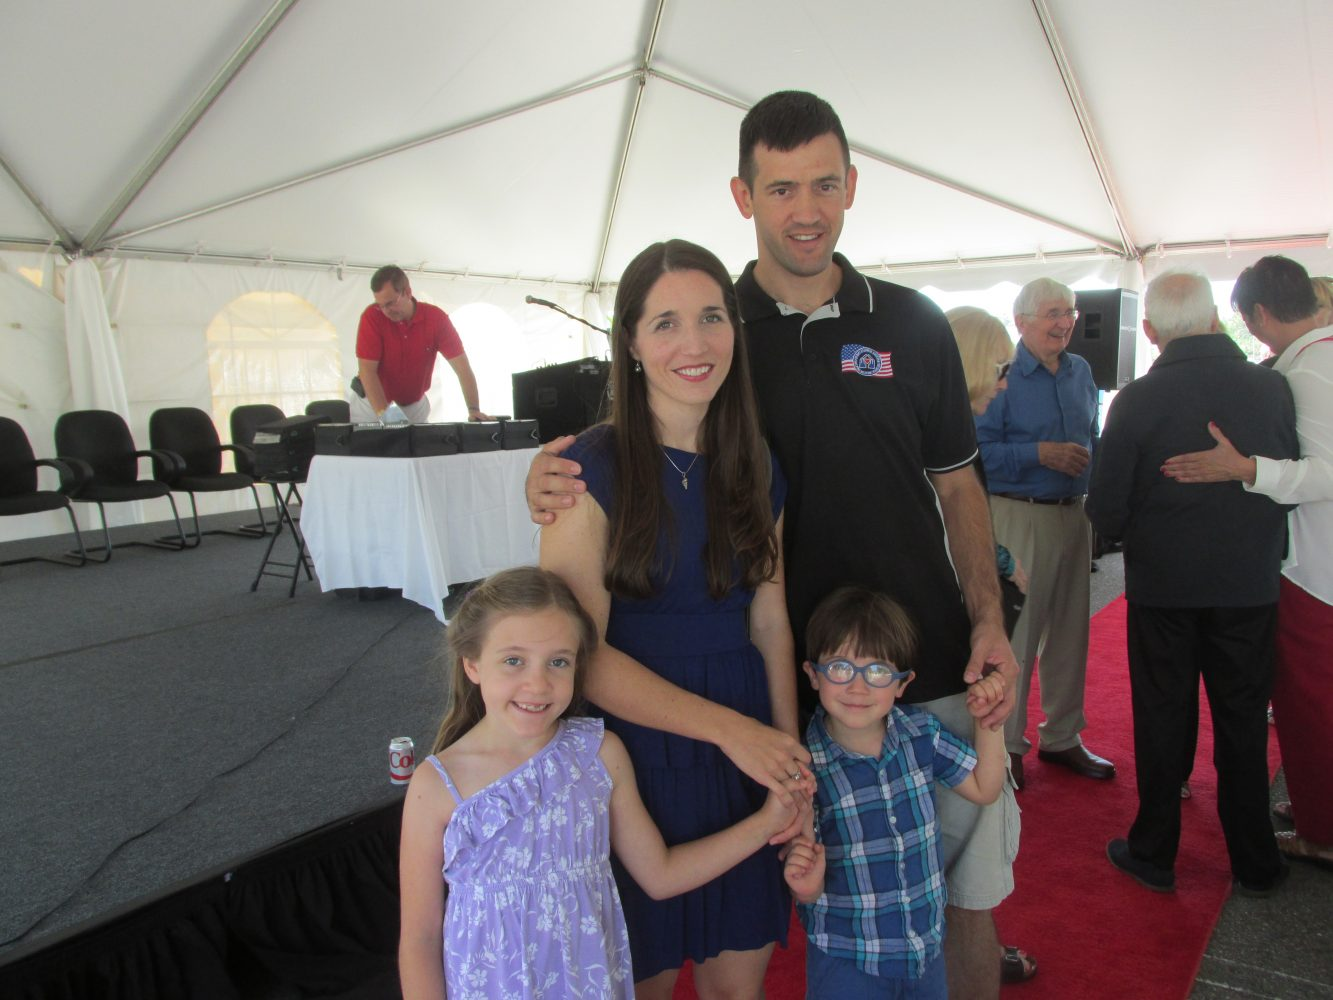 Jonathan Pruden and Family. Jonathan is a veteran his family stayed at a Fisher House when was receiving treatment. He is one of the first to suggest a Fisher House in Gainesville.